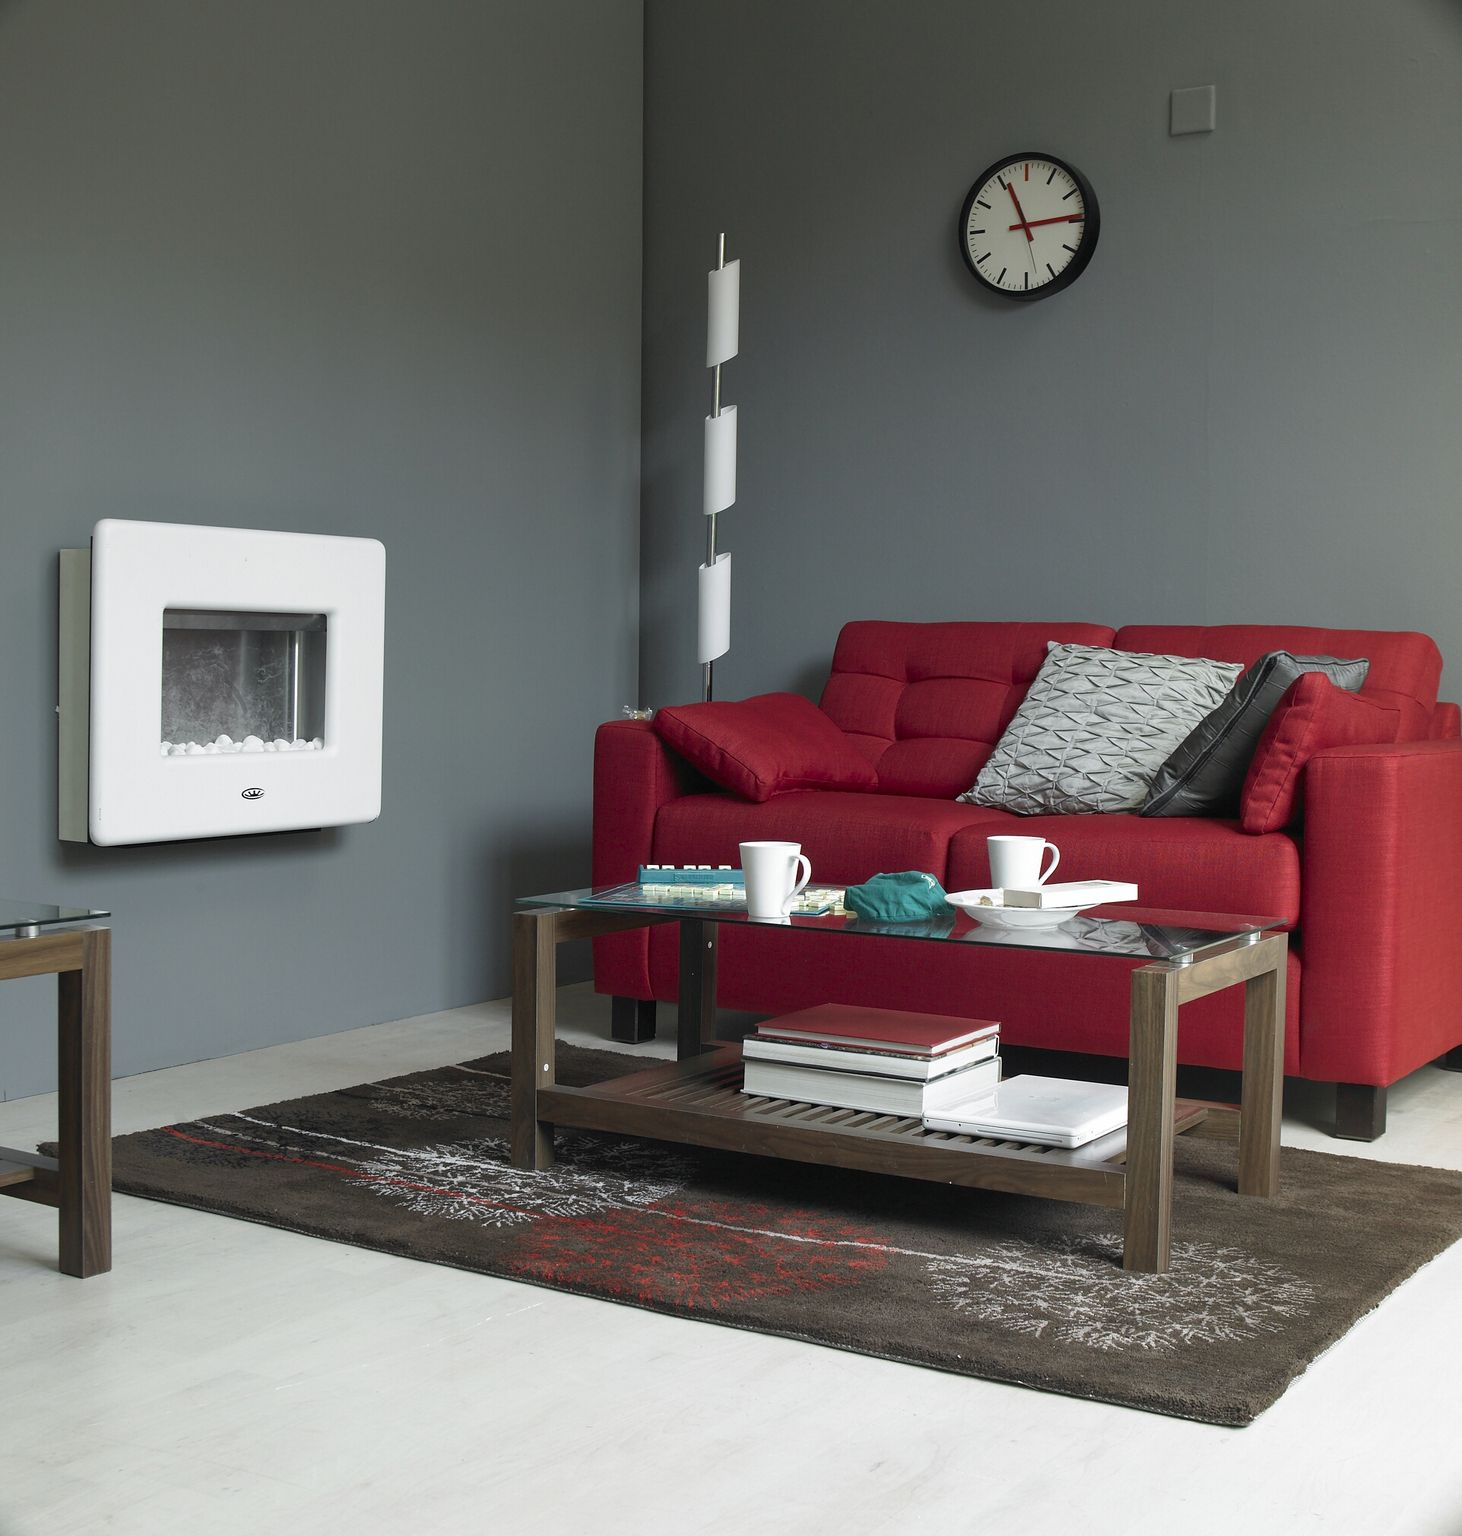 Living Room With Red Sofa Room Small Character Grey Living Room Design Filled By